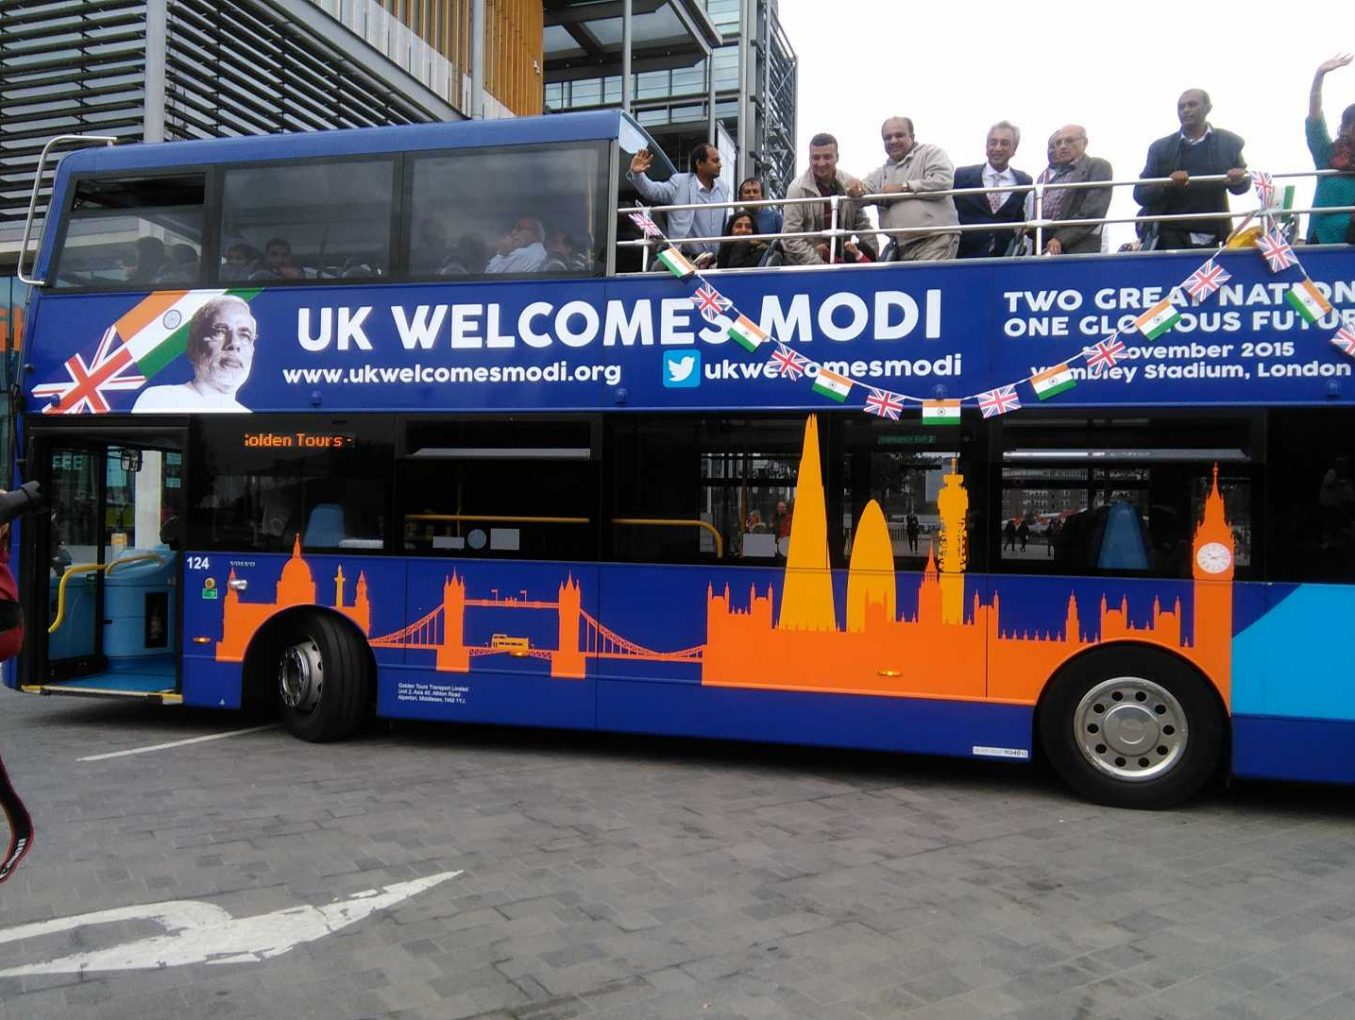 'Modi Express' bus launched in London